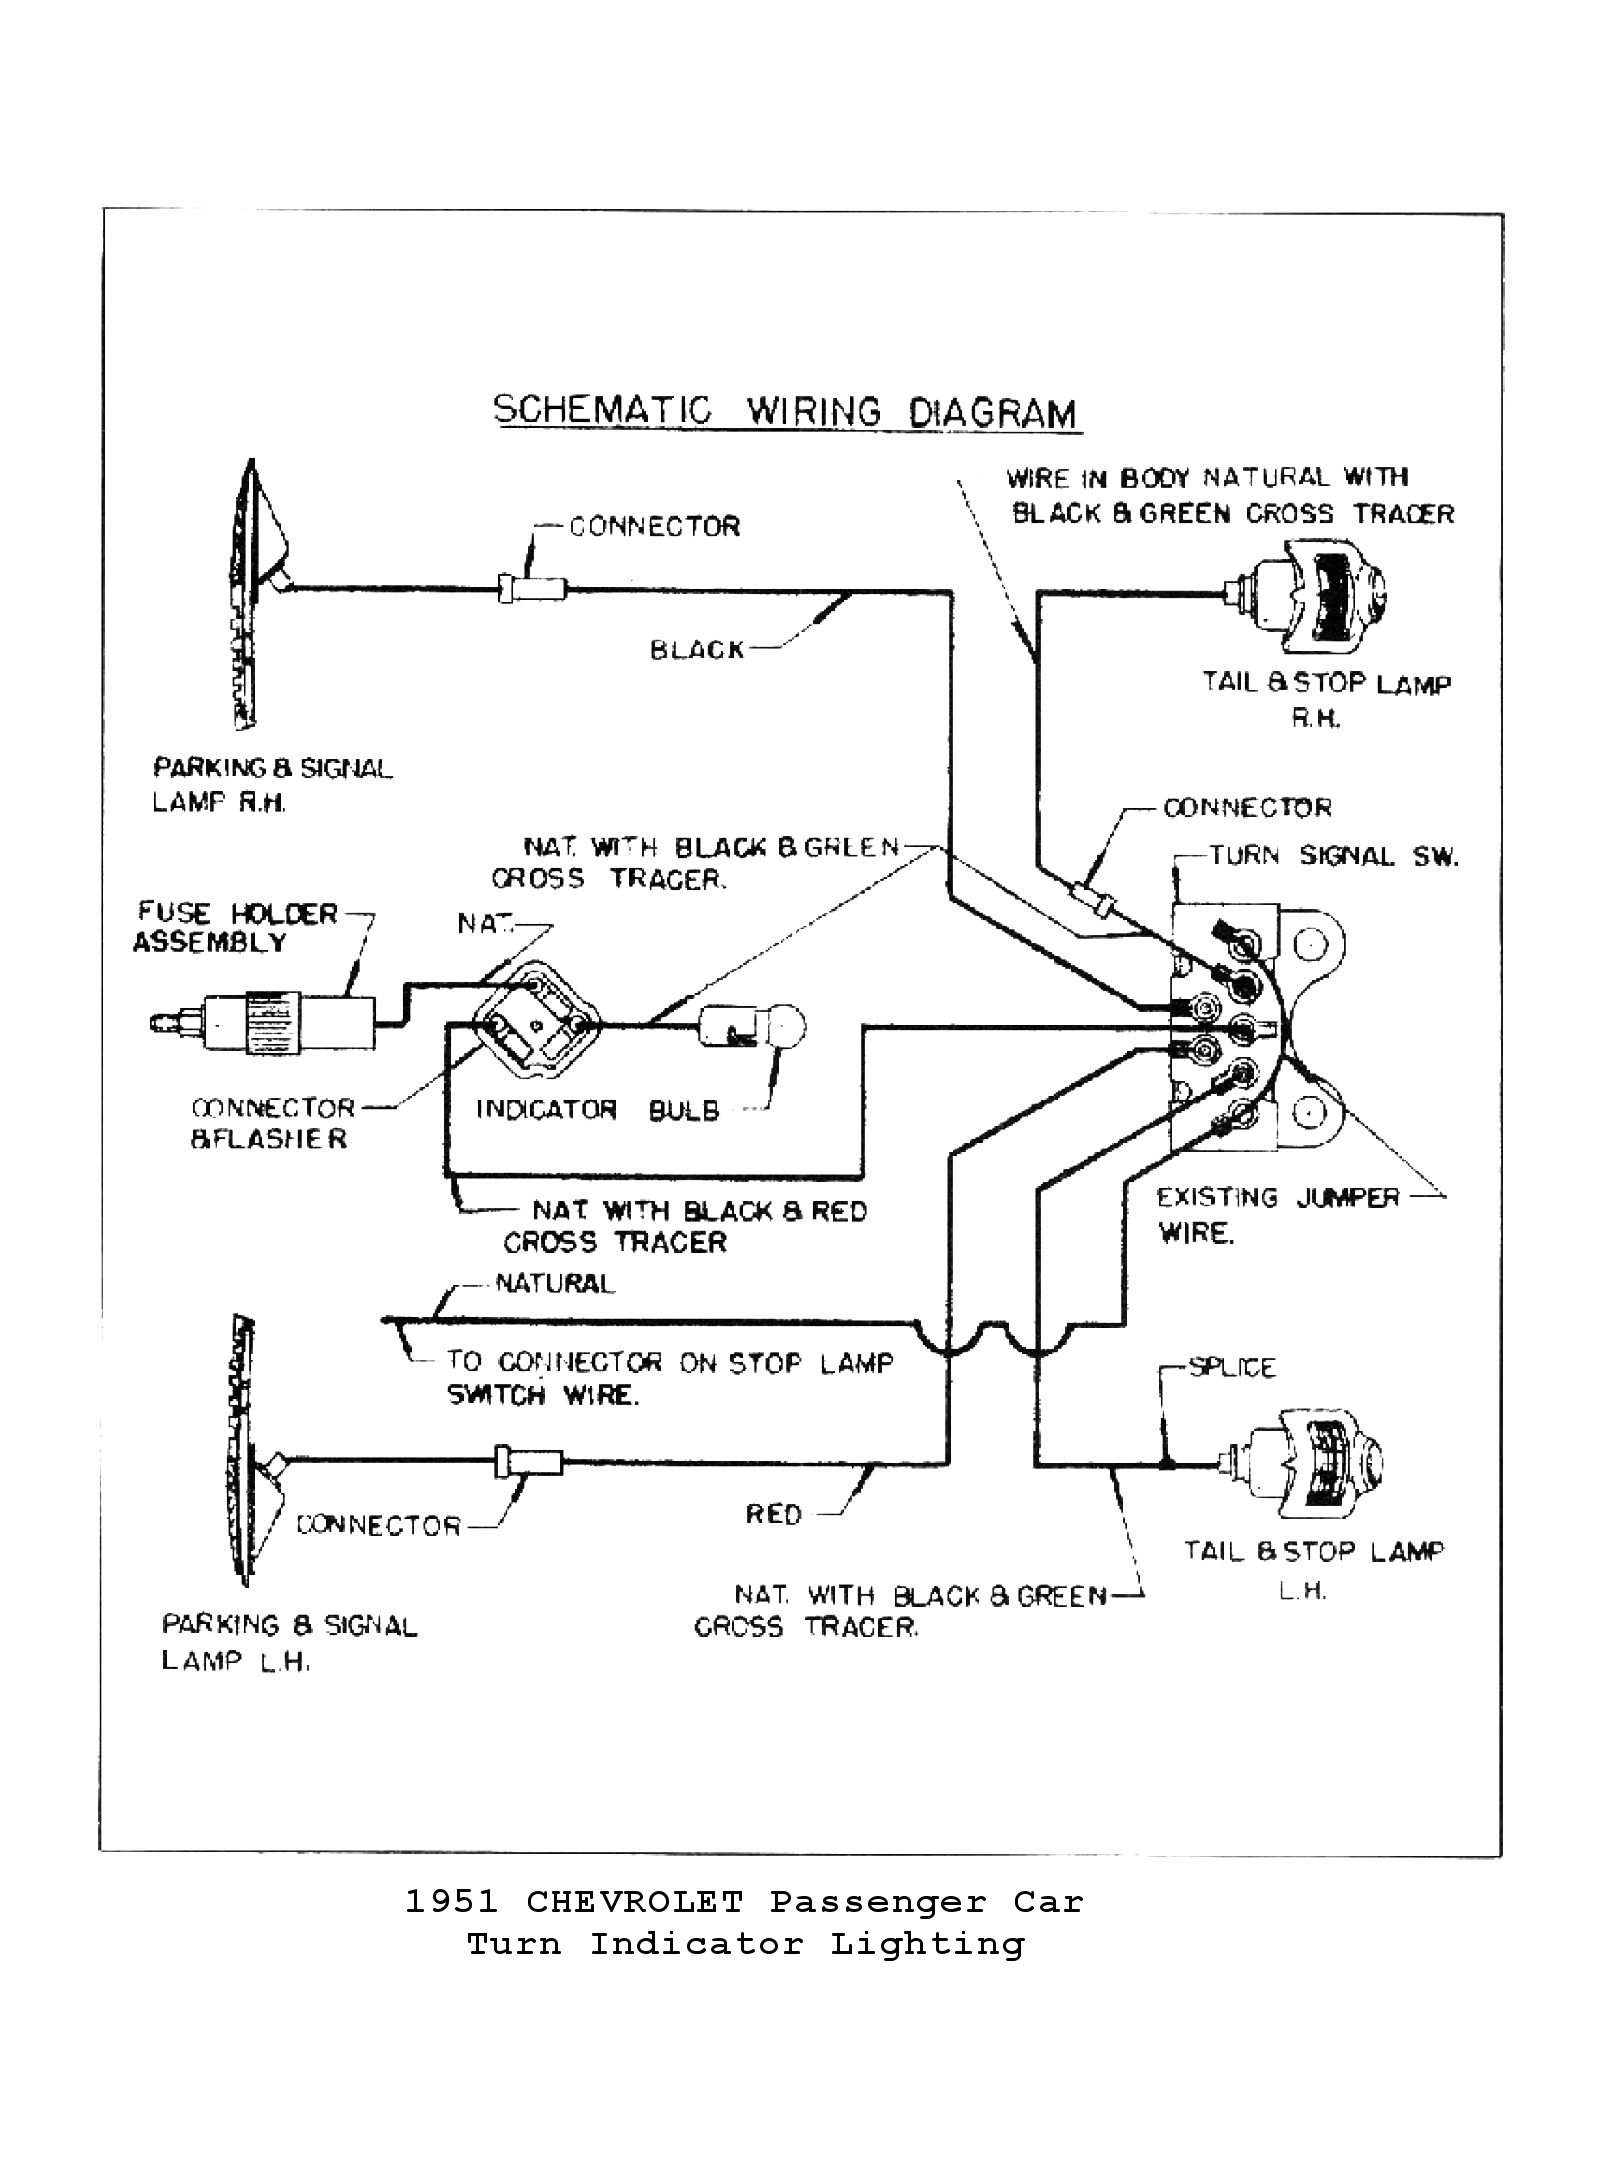 chevy wiring diagrams rh chevy oldcarmanualproject com 1995 chevy truck wiring schematics 1955 chevy truck wiring diagram